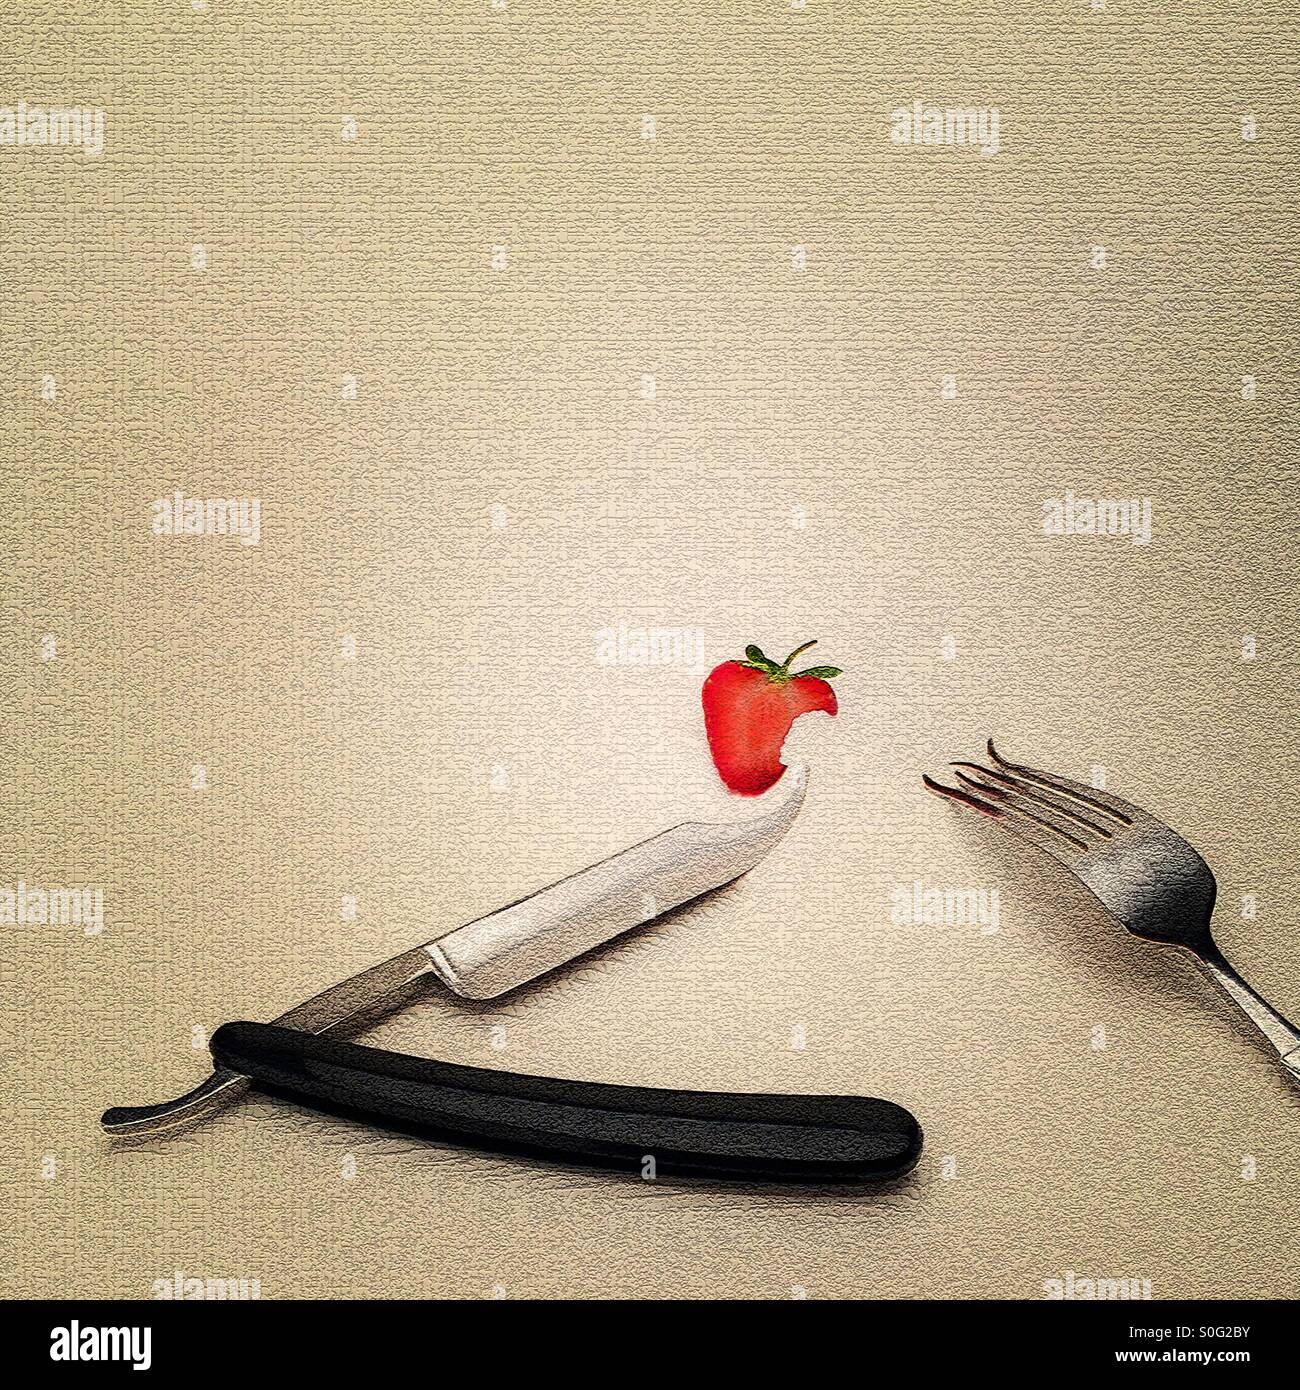 Cut throat razor knife fork and strawberry ( digitally manipulated image ) strange and surreal dinner place setting - Stock Image